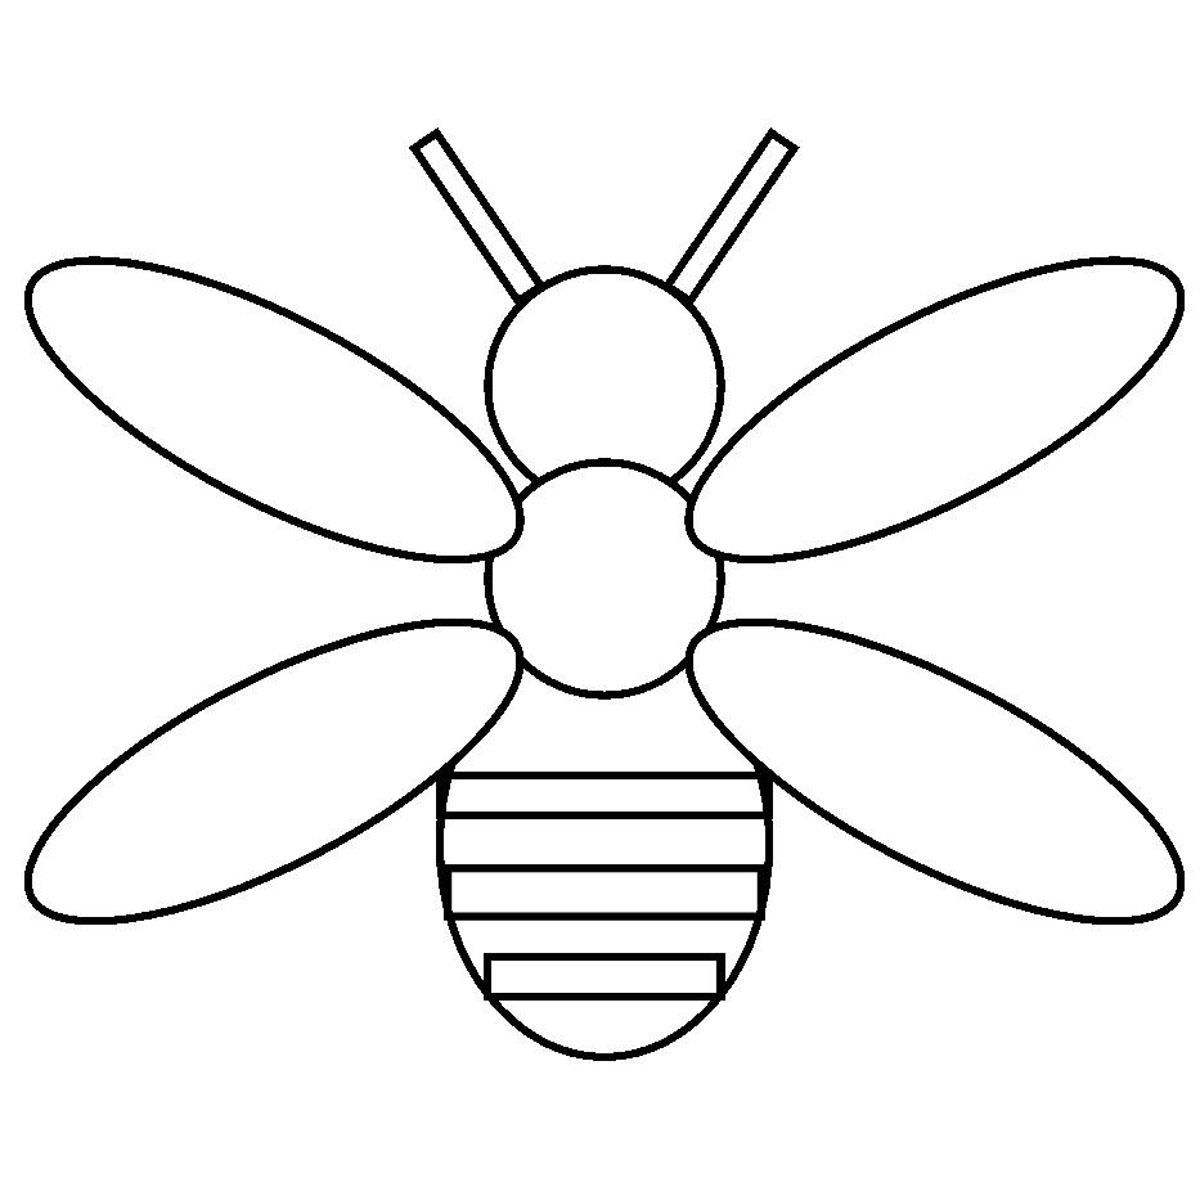 Line Art Bee : Bee hive outline clipart suggest